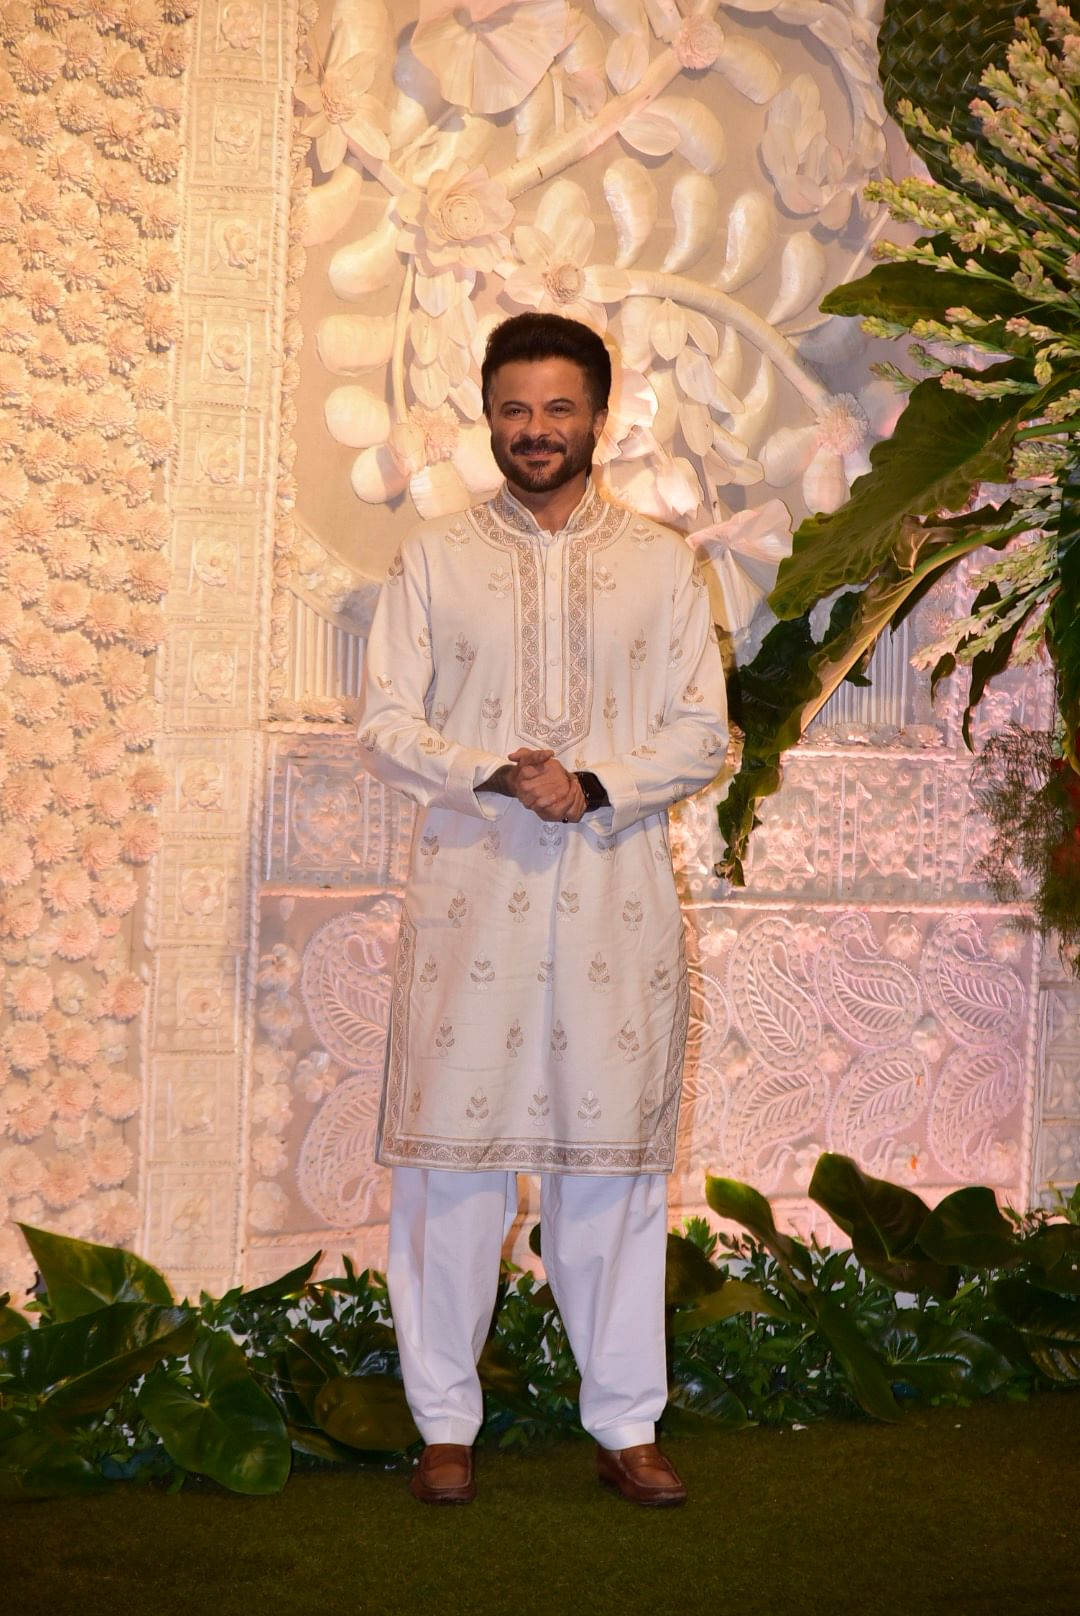 Anil Kapoor donning all while for Ganpati celebrations at at Antilia